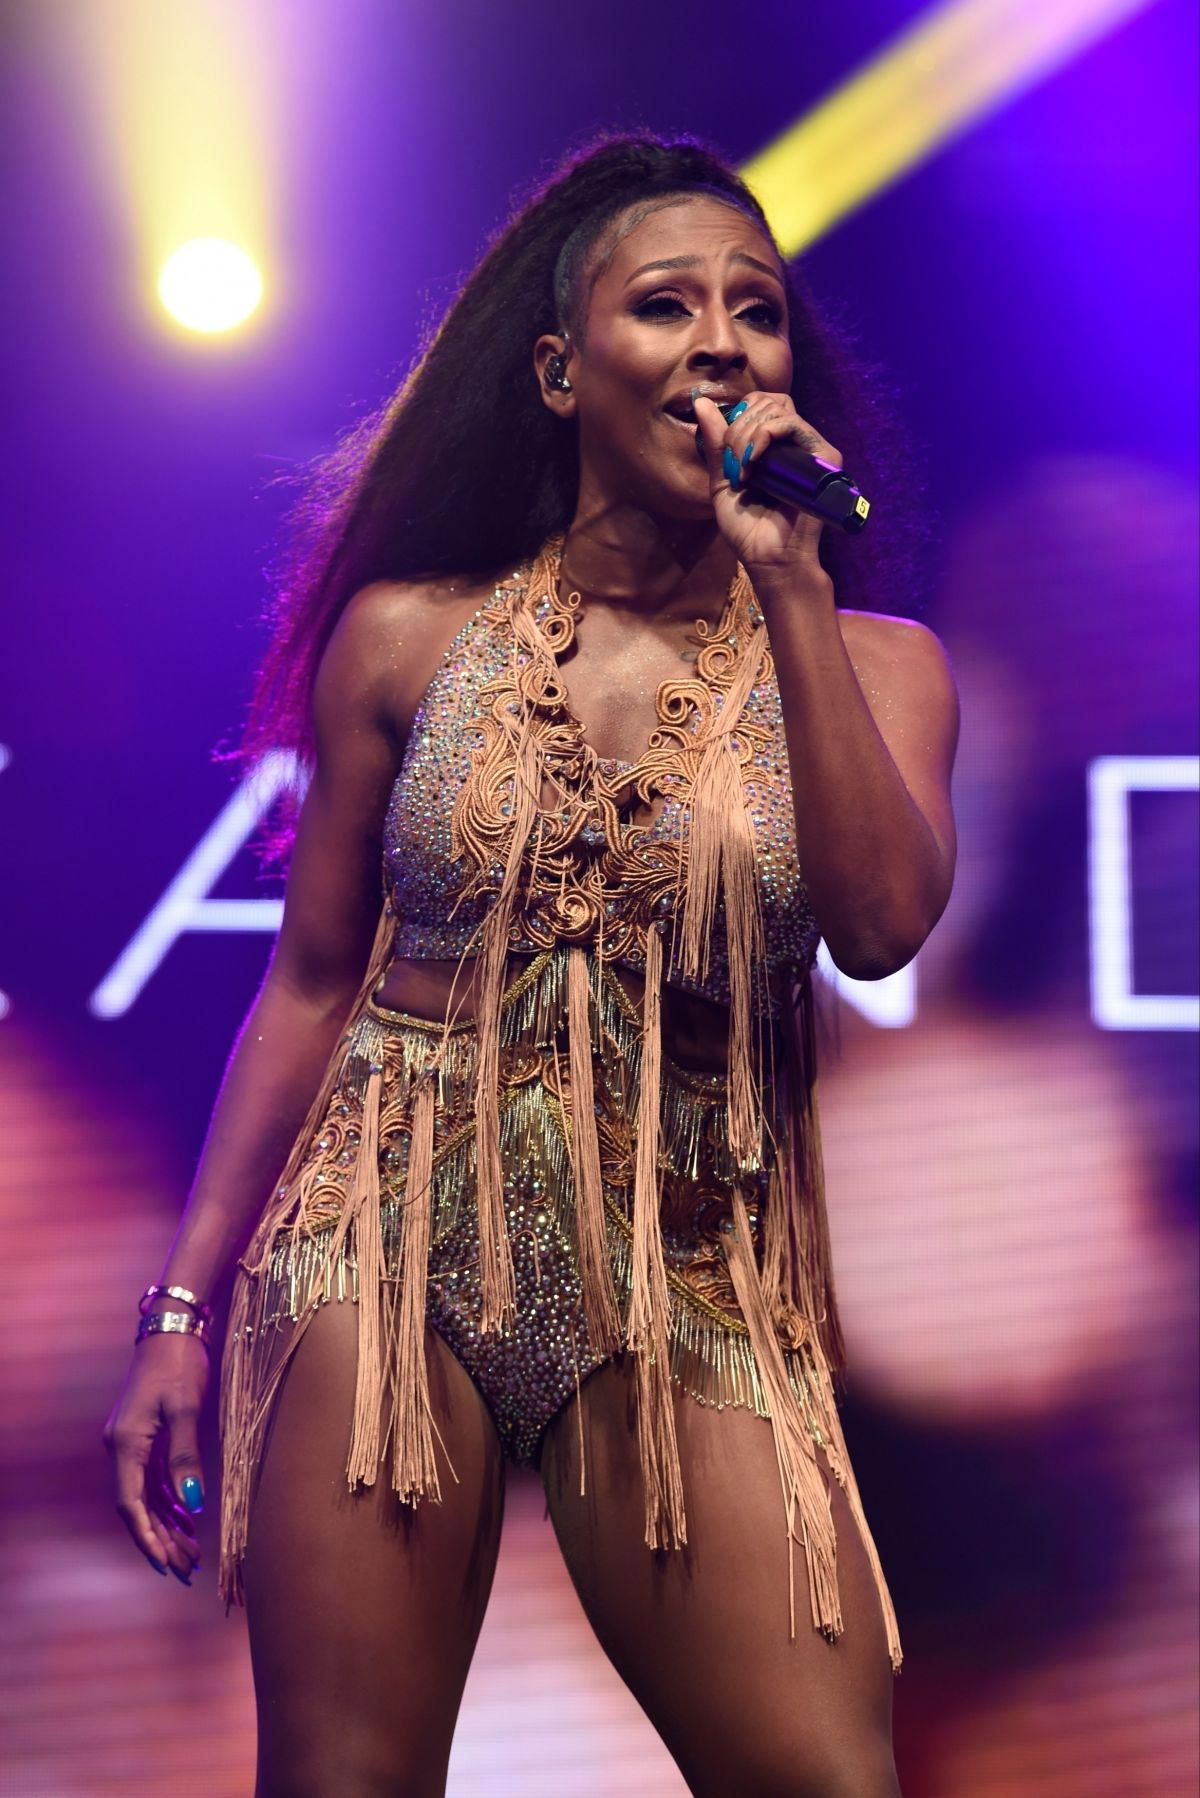 Alexandra Burke Performs at Pride in Manchester 2018/08/27 1